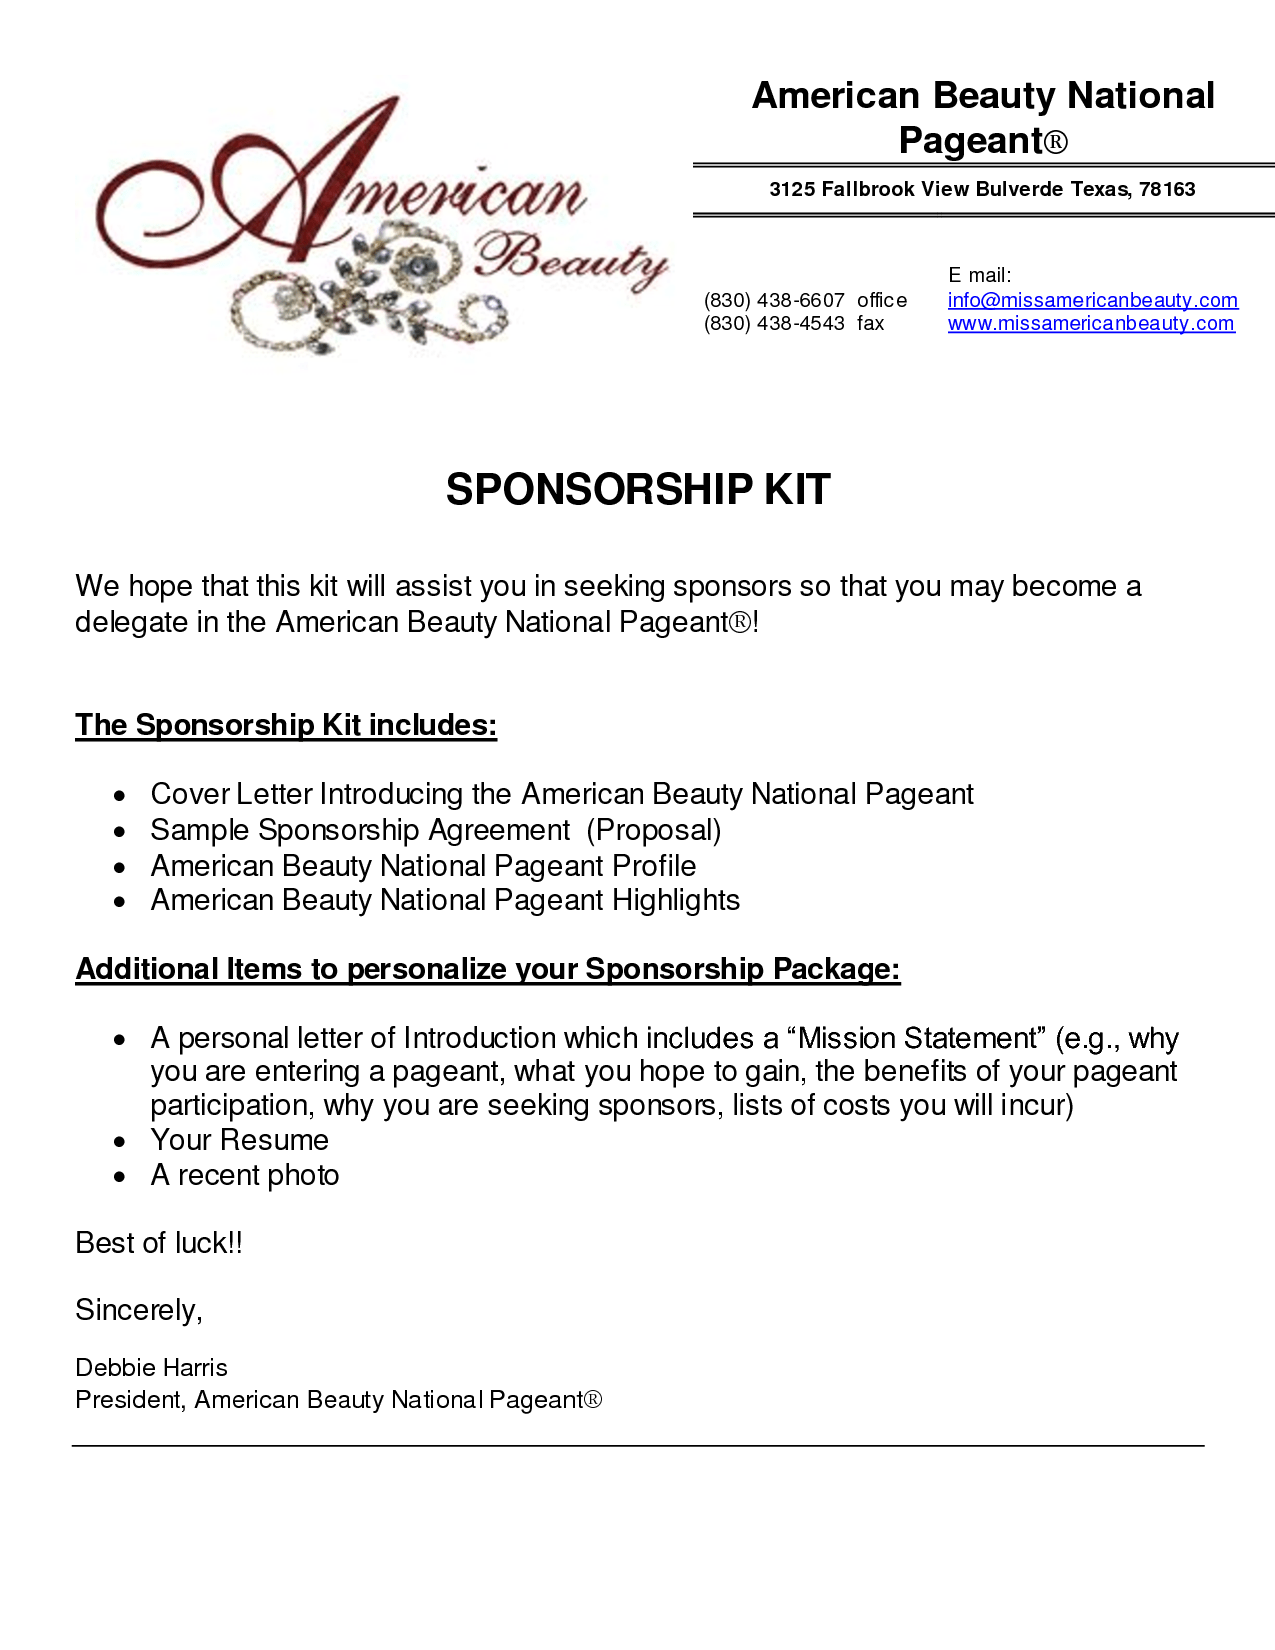 Example Of A Sponsorship Proposal lined paper for writing – Event Proposals Samples